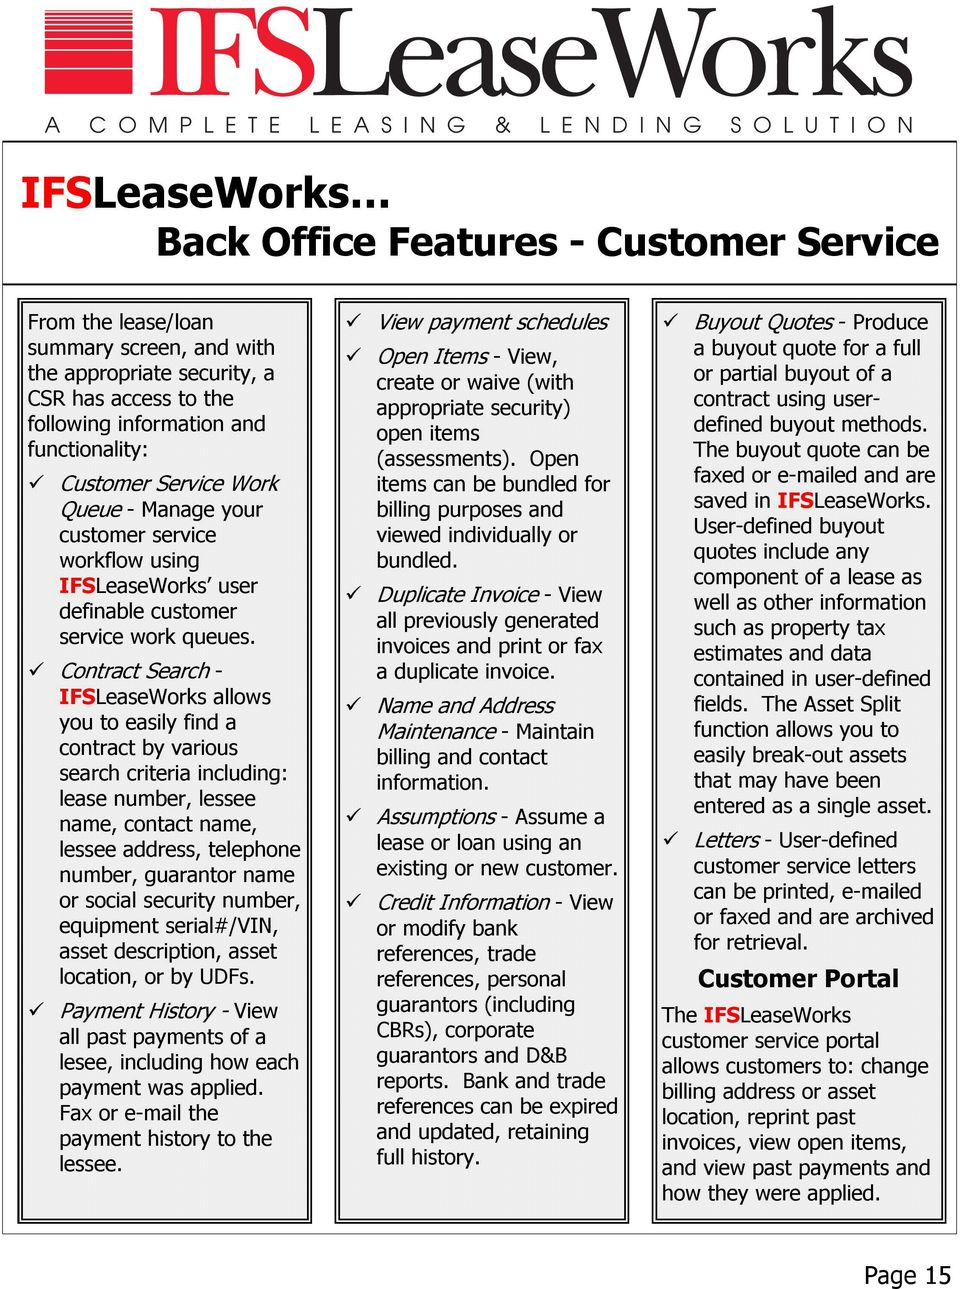 Contract Search - IFSLeaseWorks allows you to easily find a contract by various search criteria including: lease number, lessee name, contact name, lessee address, telephone number, guarantor name or